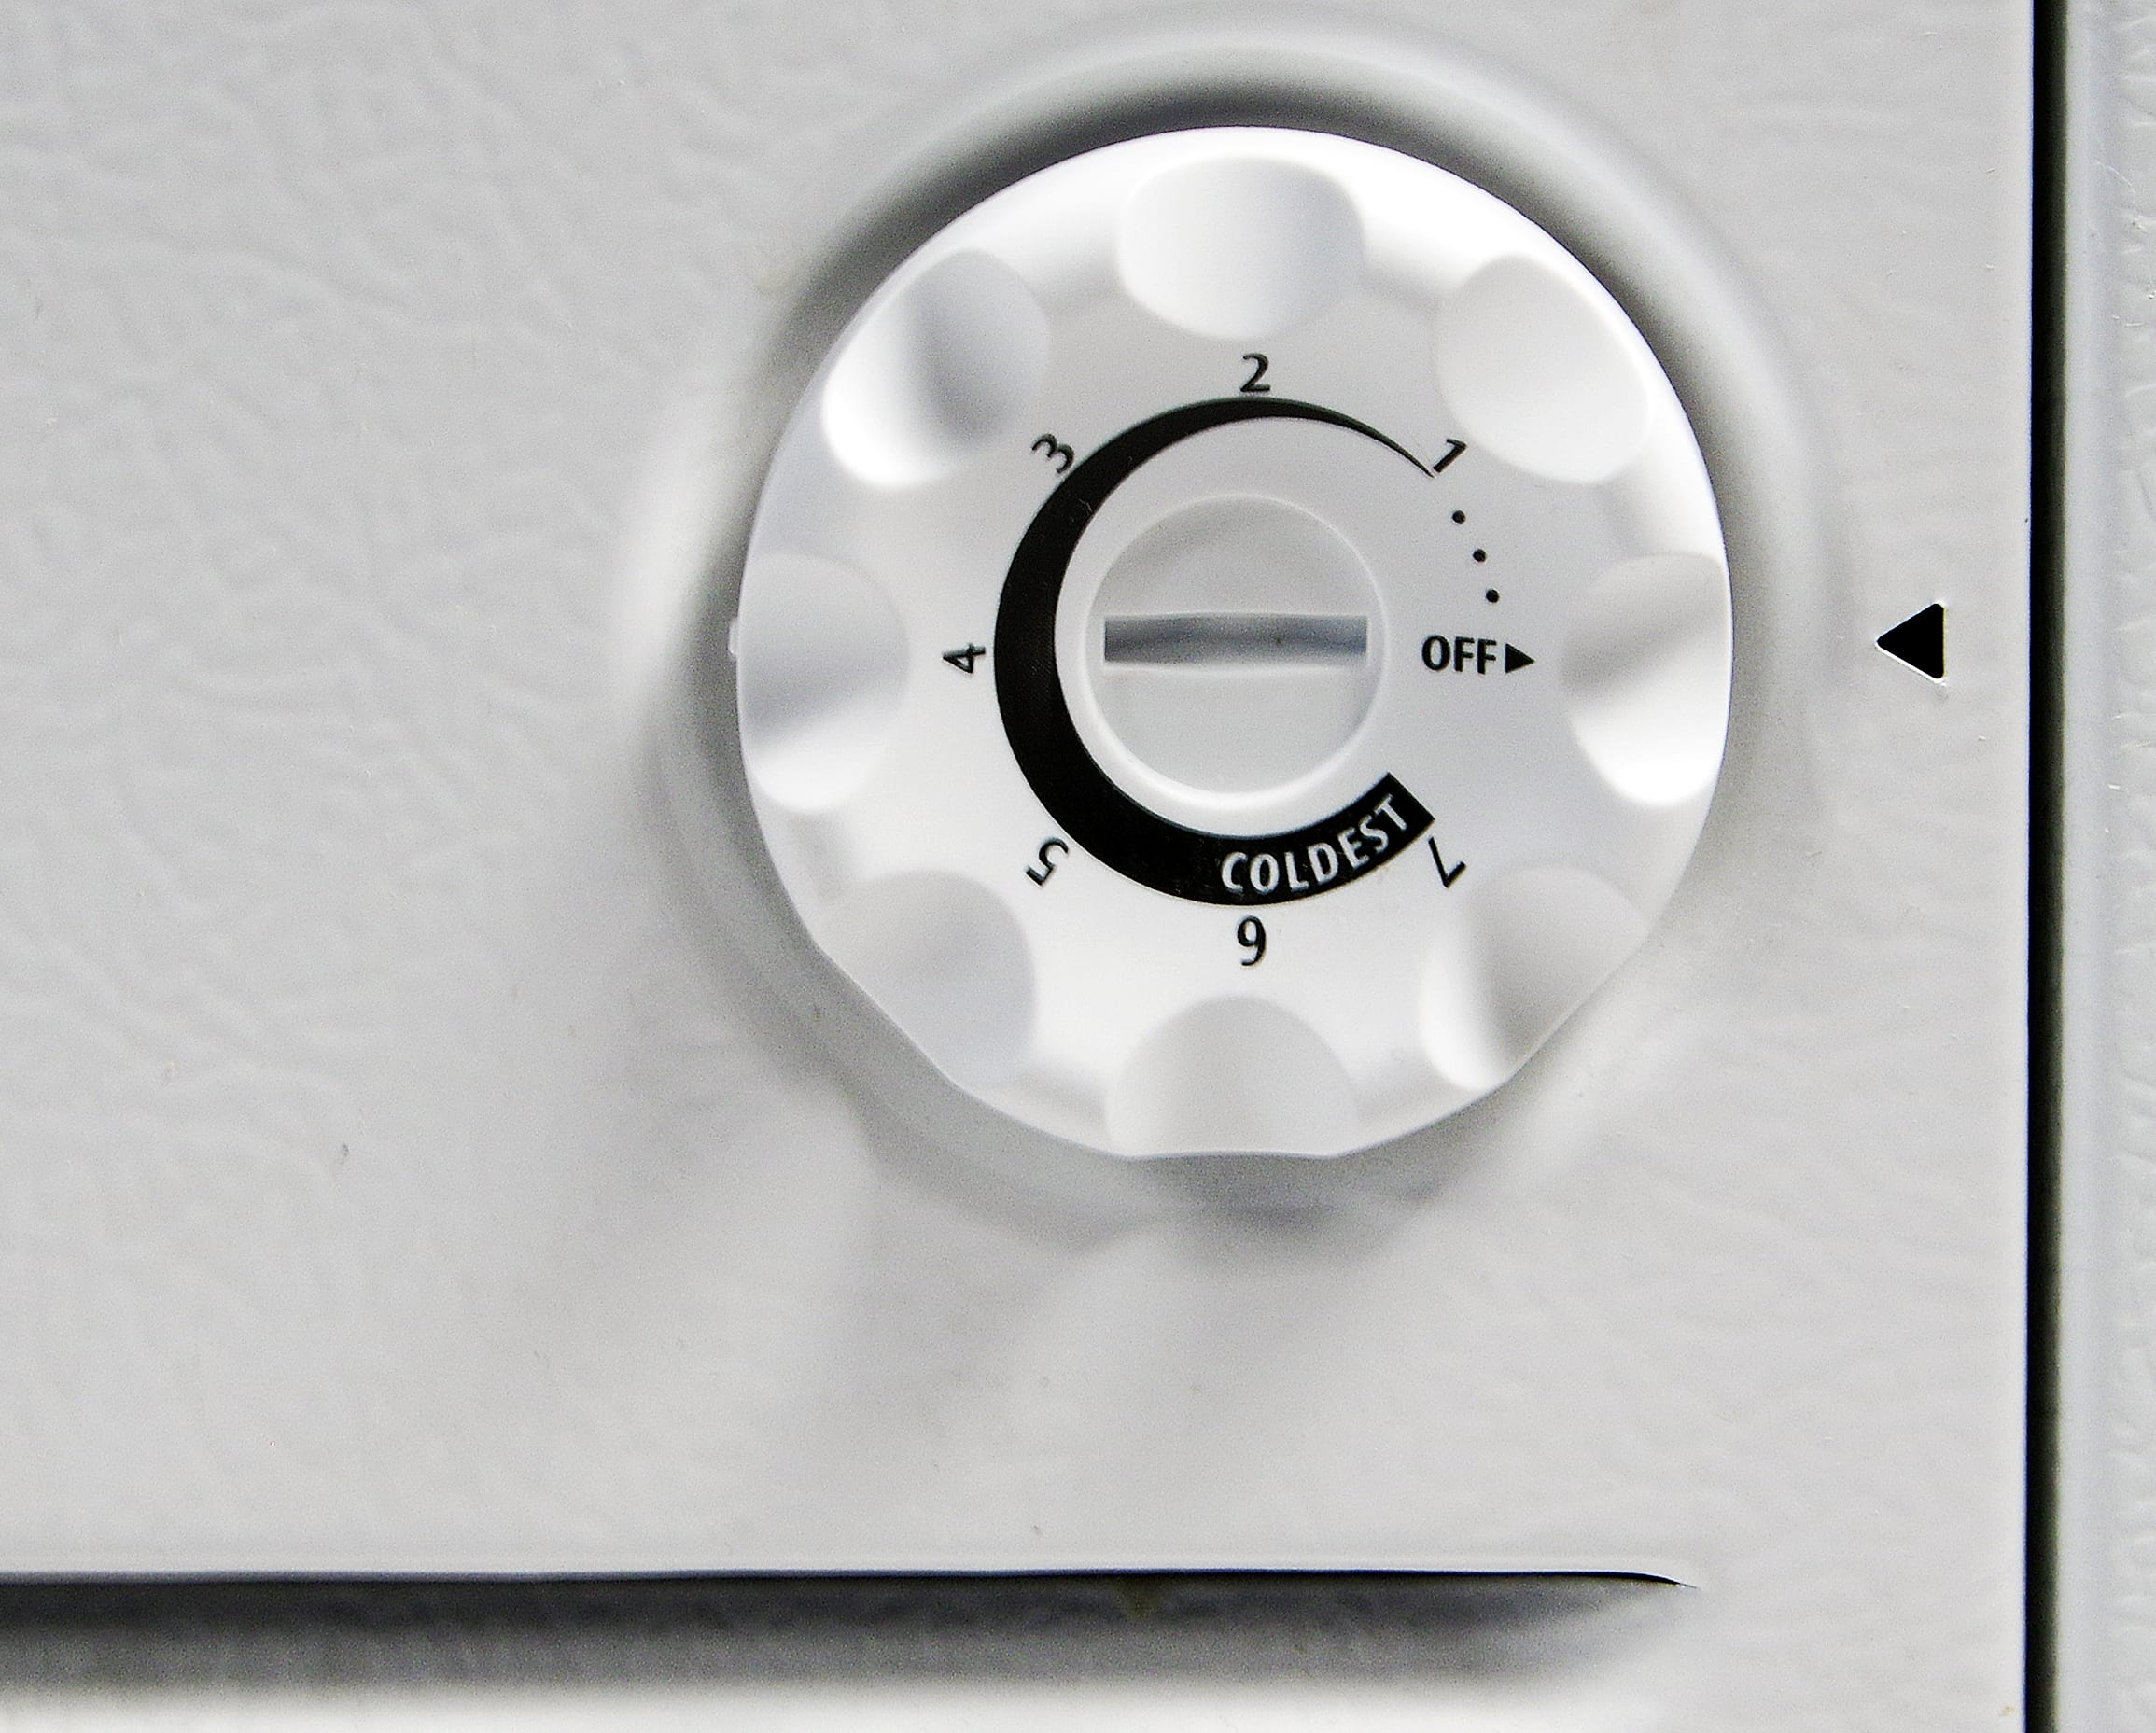 The Frigidaire FFFC16M5QW's recommended setting is cold enough, but you may want to turn it down in order to compensate for temperature shifts.